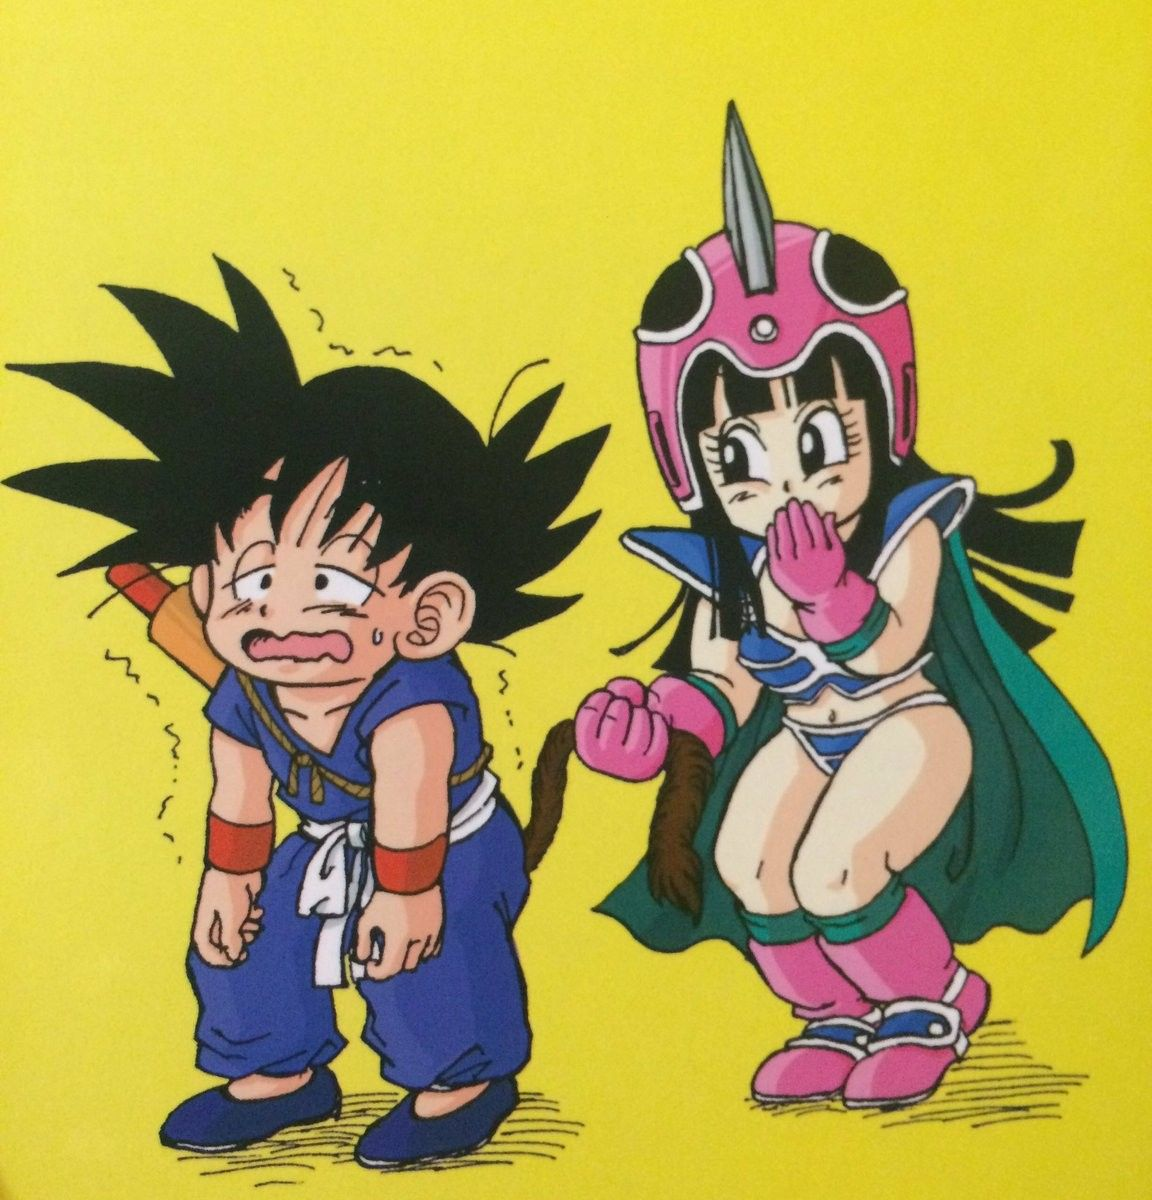 Milk ball pictures of the dragon ball model naked